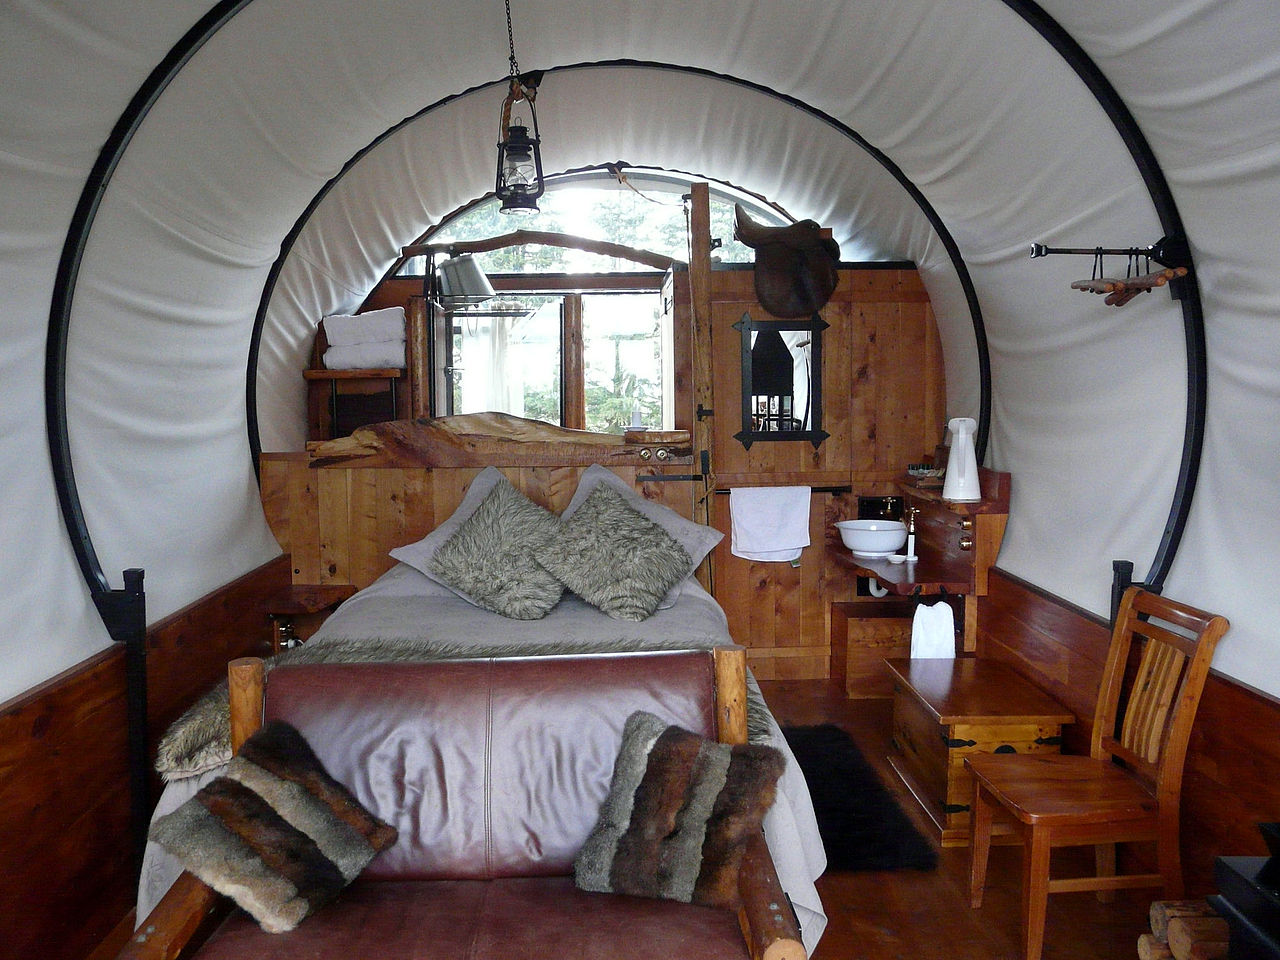 an image of glamping 1,280 × 960 pixels